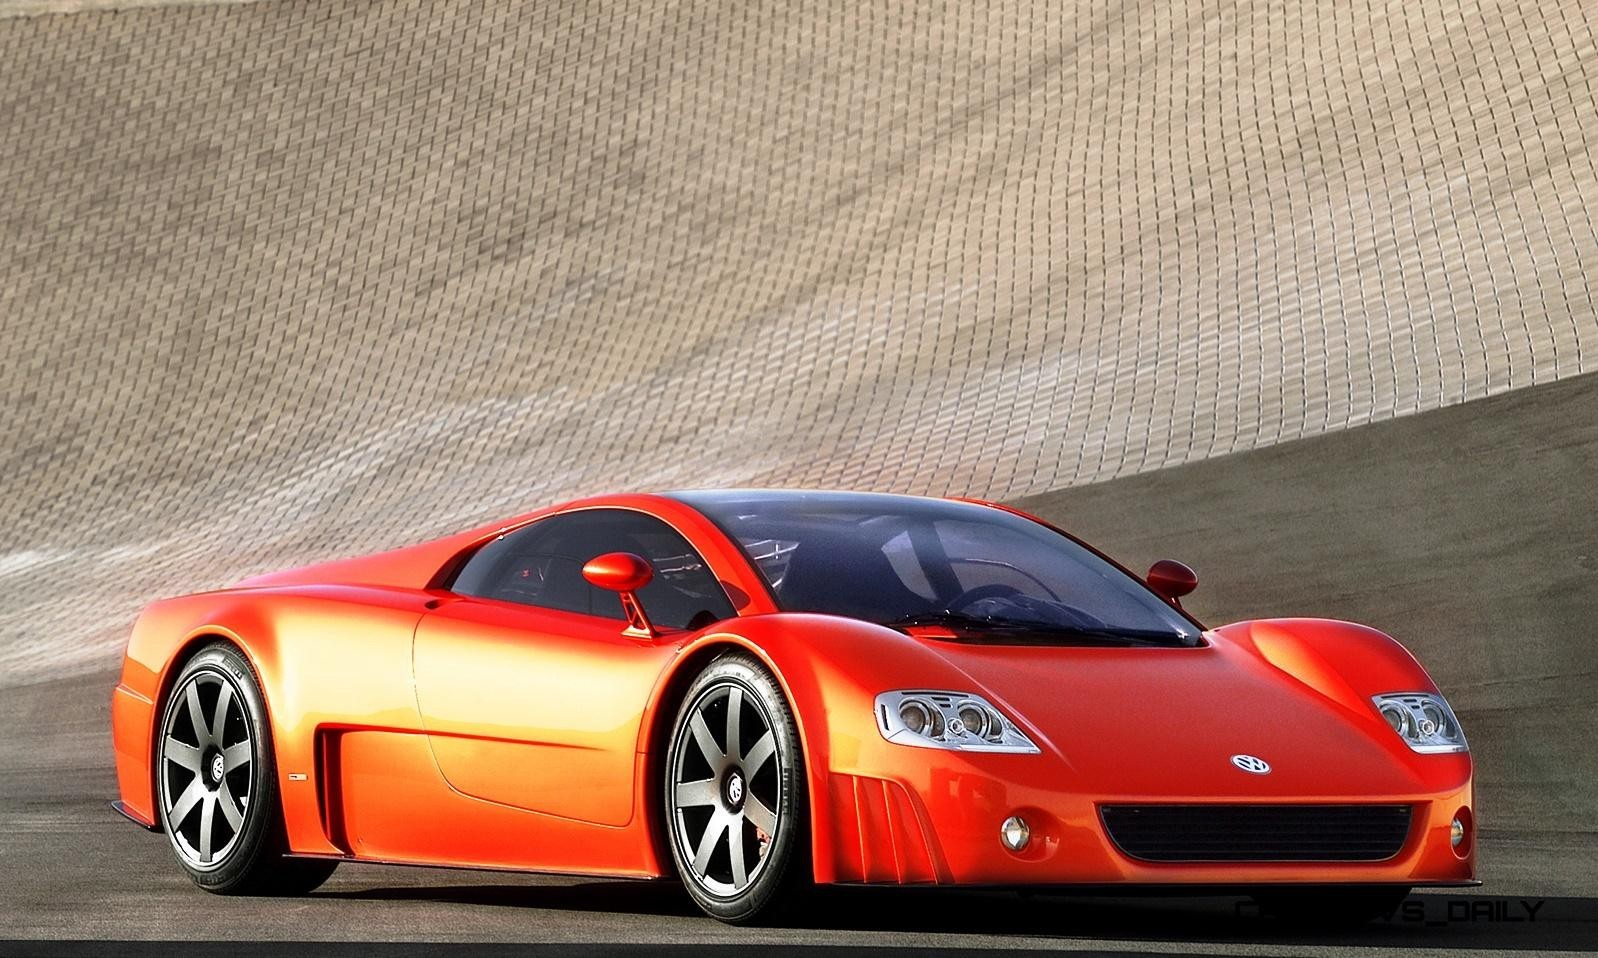 2001 Volkswagen W12 Coupe Concept Introduces Huge Engine and Hypercar Performance to VW Lore 7